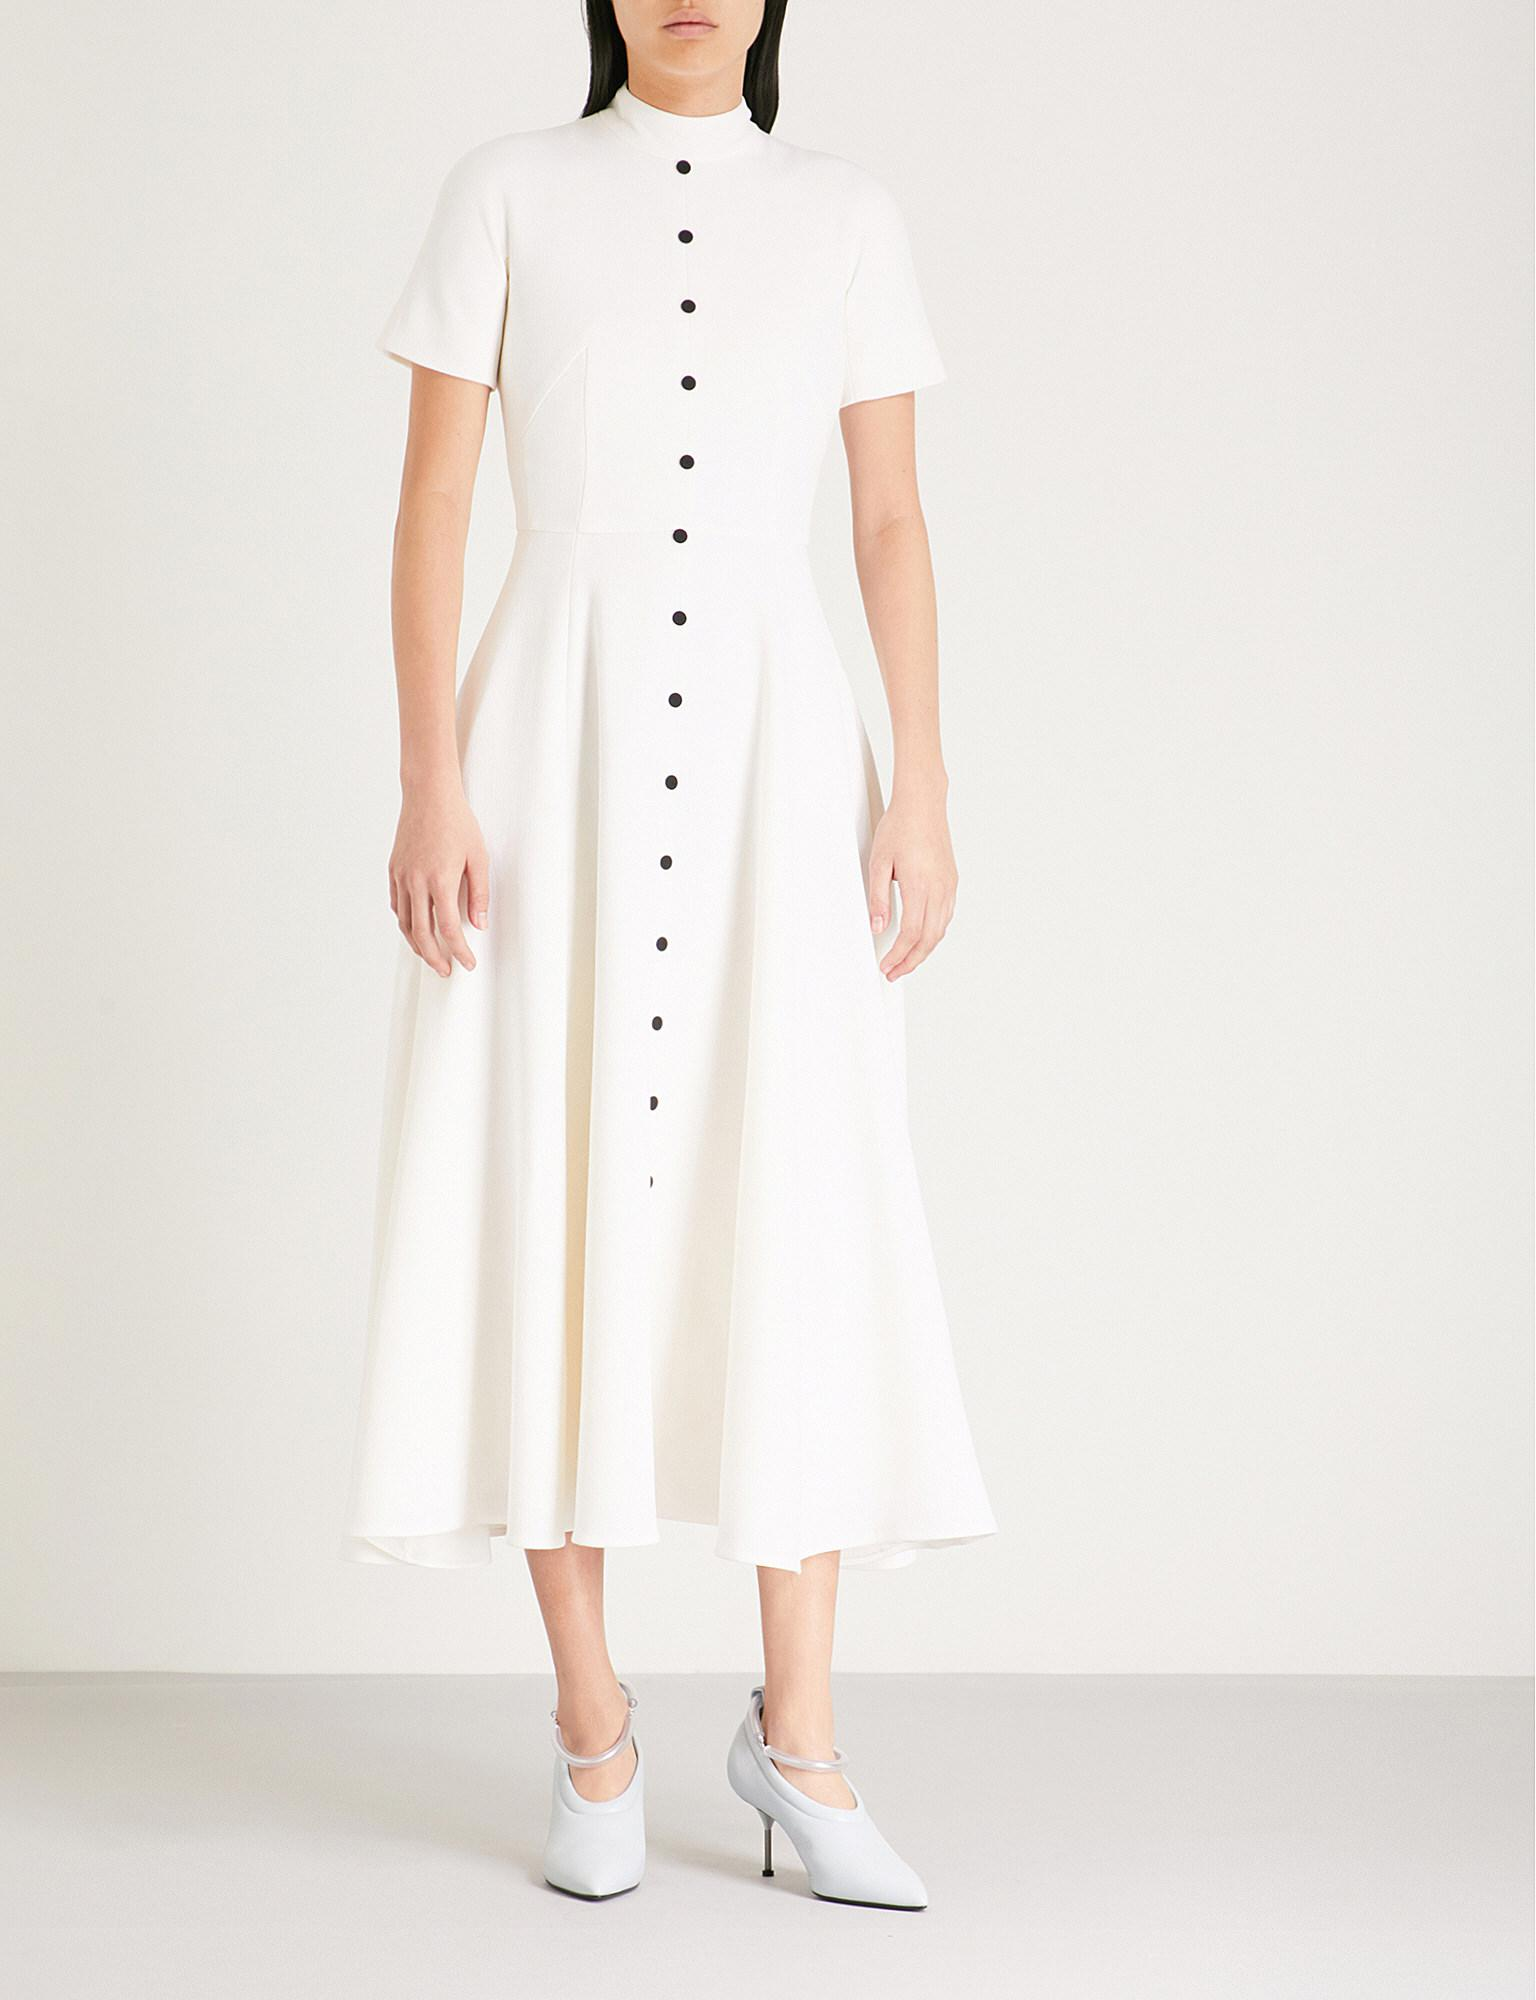 Camila Wool-crepe Midi Dress - Cream Emilia Wickstead Official Site Countdown Package For Sale Newest Cheap Price Exclusive For Sale Cheap Price Wholesale rQIahRVP